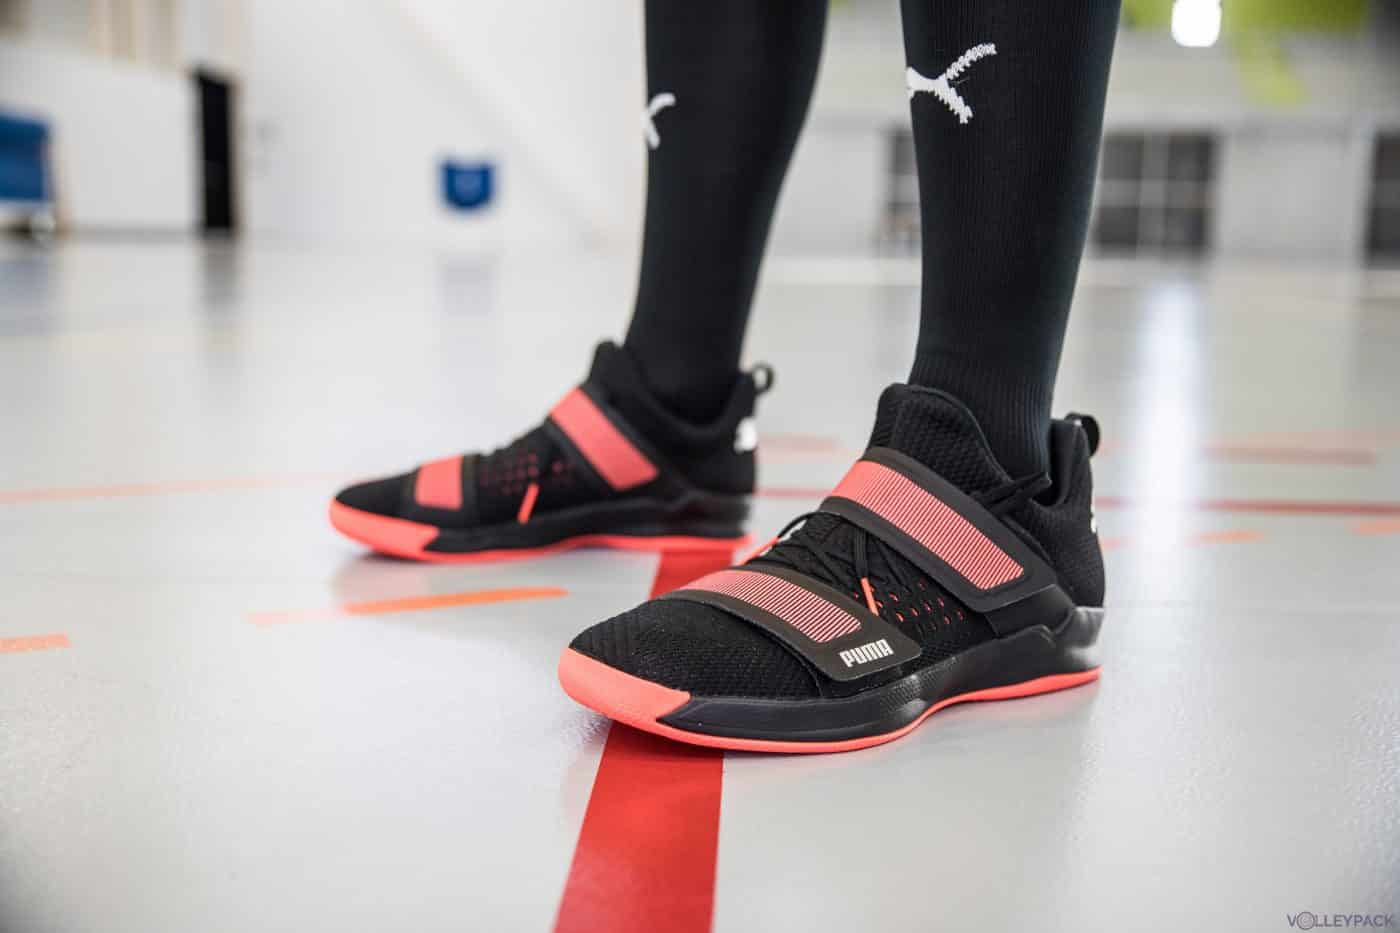 puma-rise-xt3-netfit-test-volleypack-chaussures-volley-10